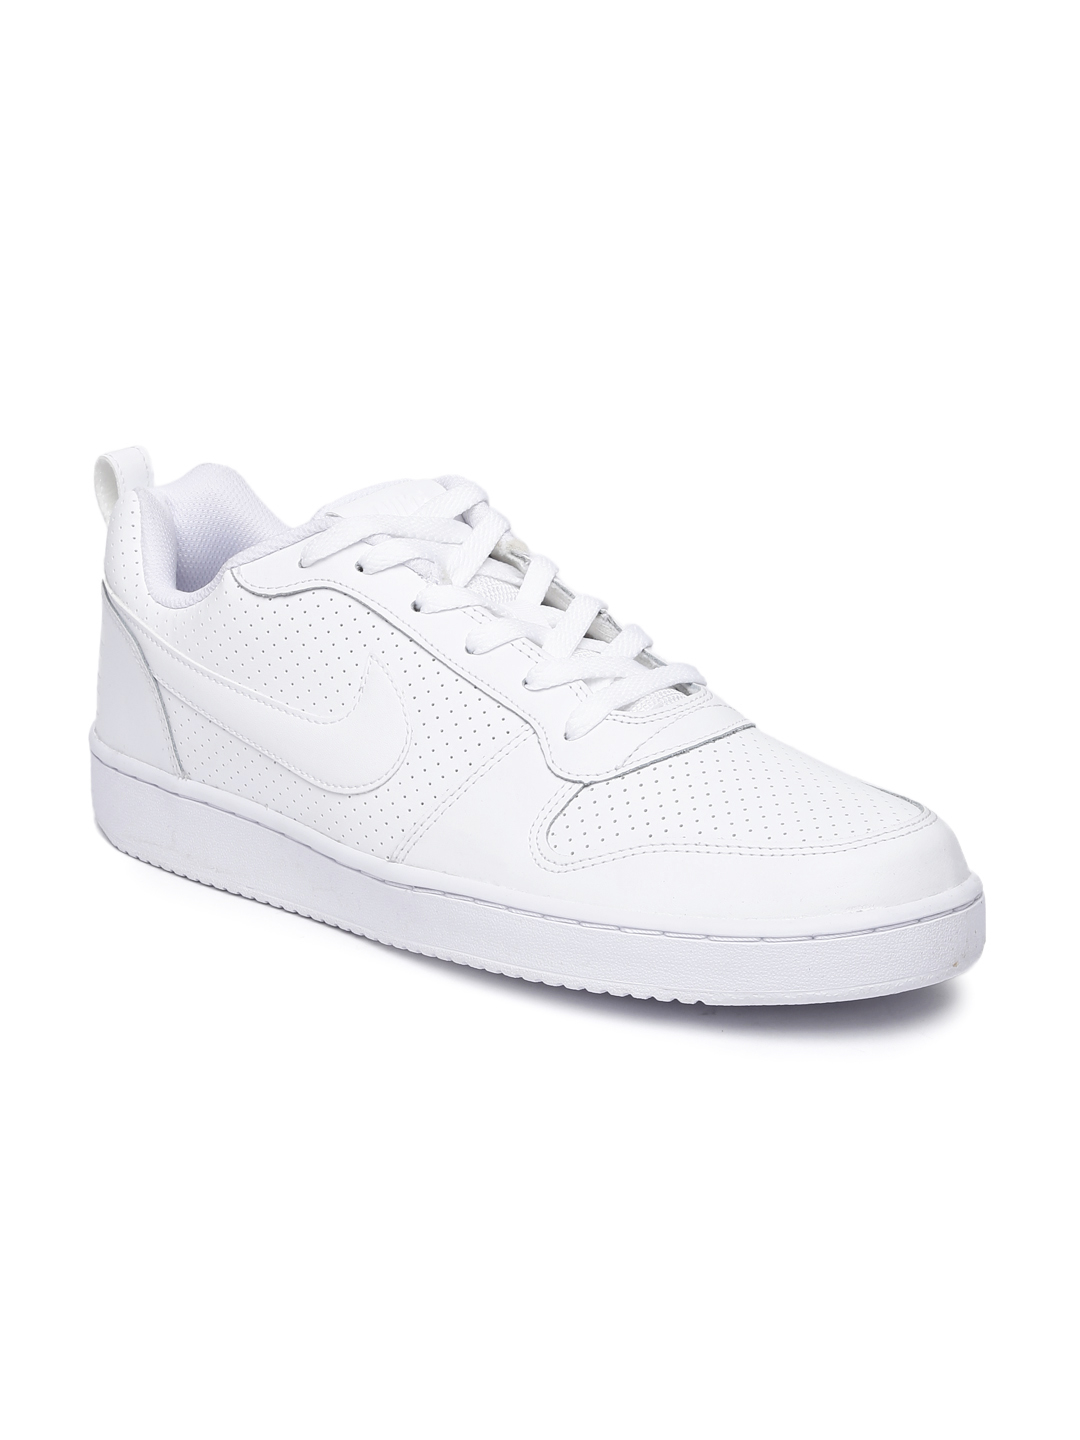 c0b1f9a3701 White Nike Sneakers For Men   Buy Nike Sneakers   Shoes